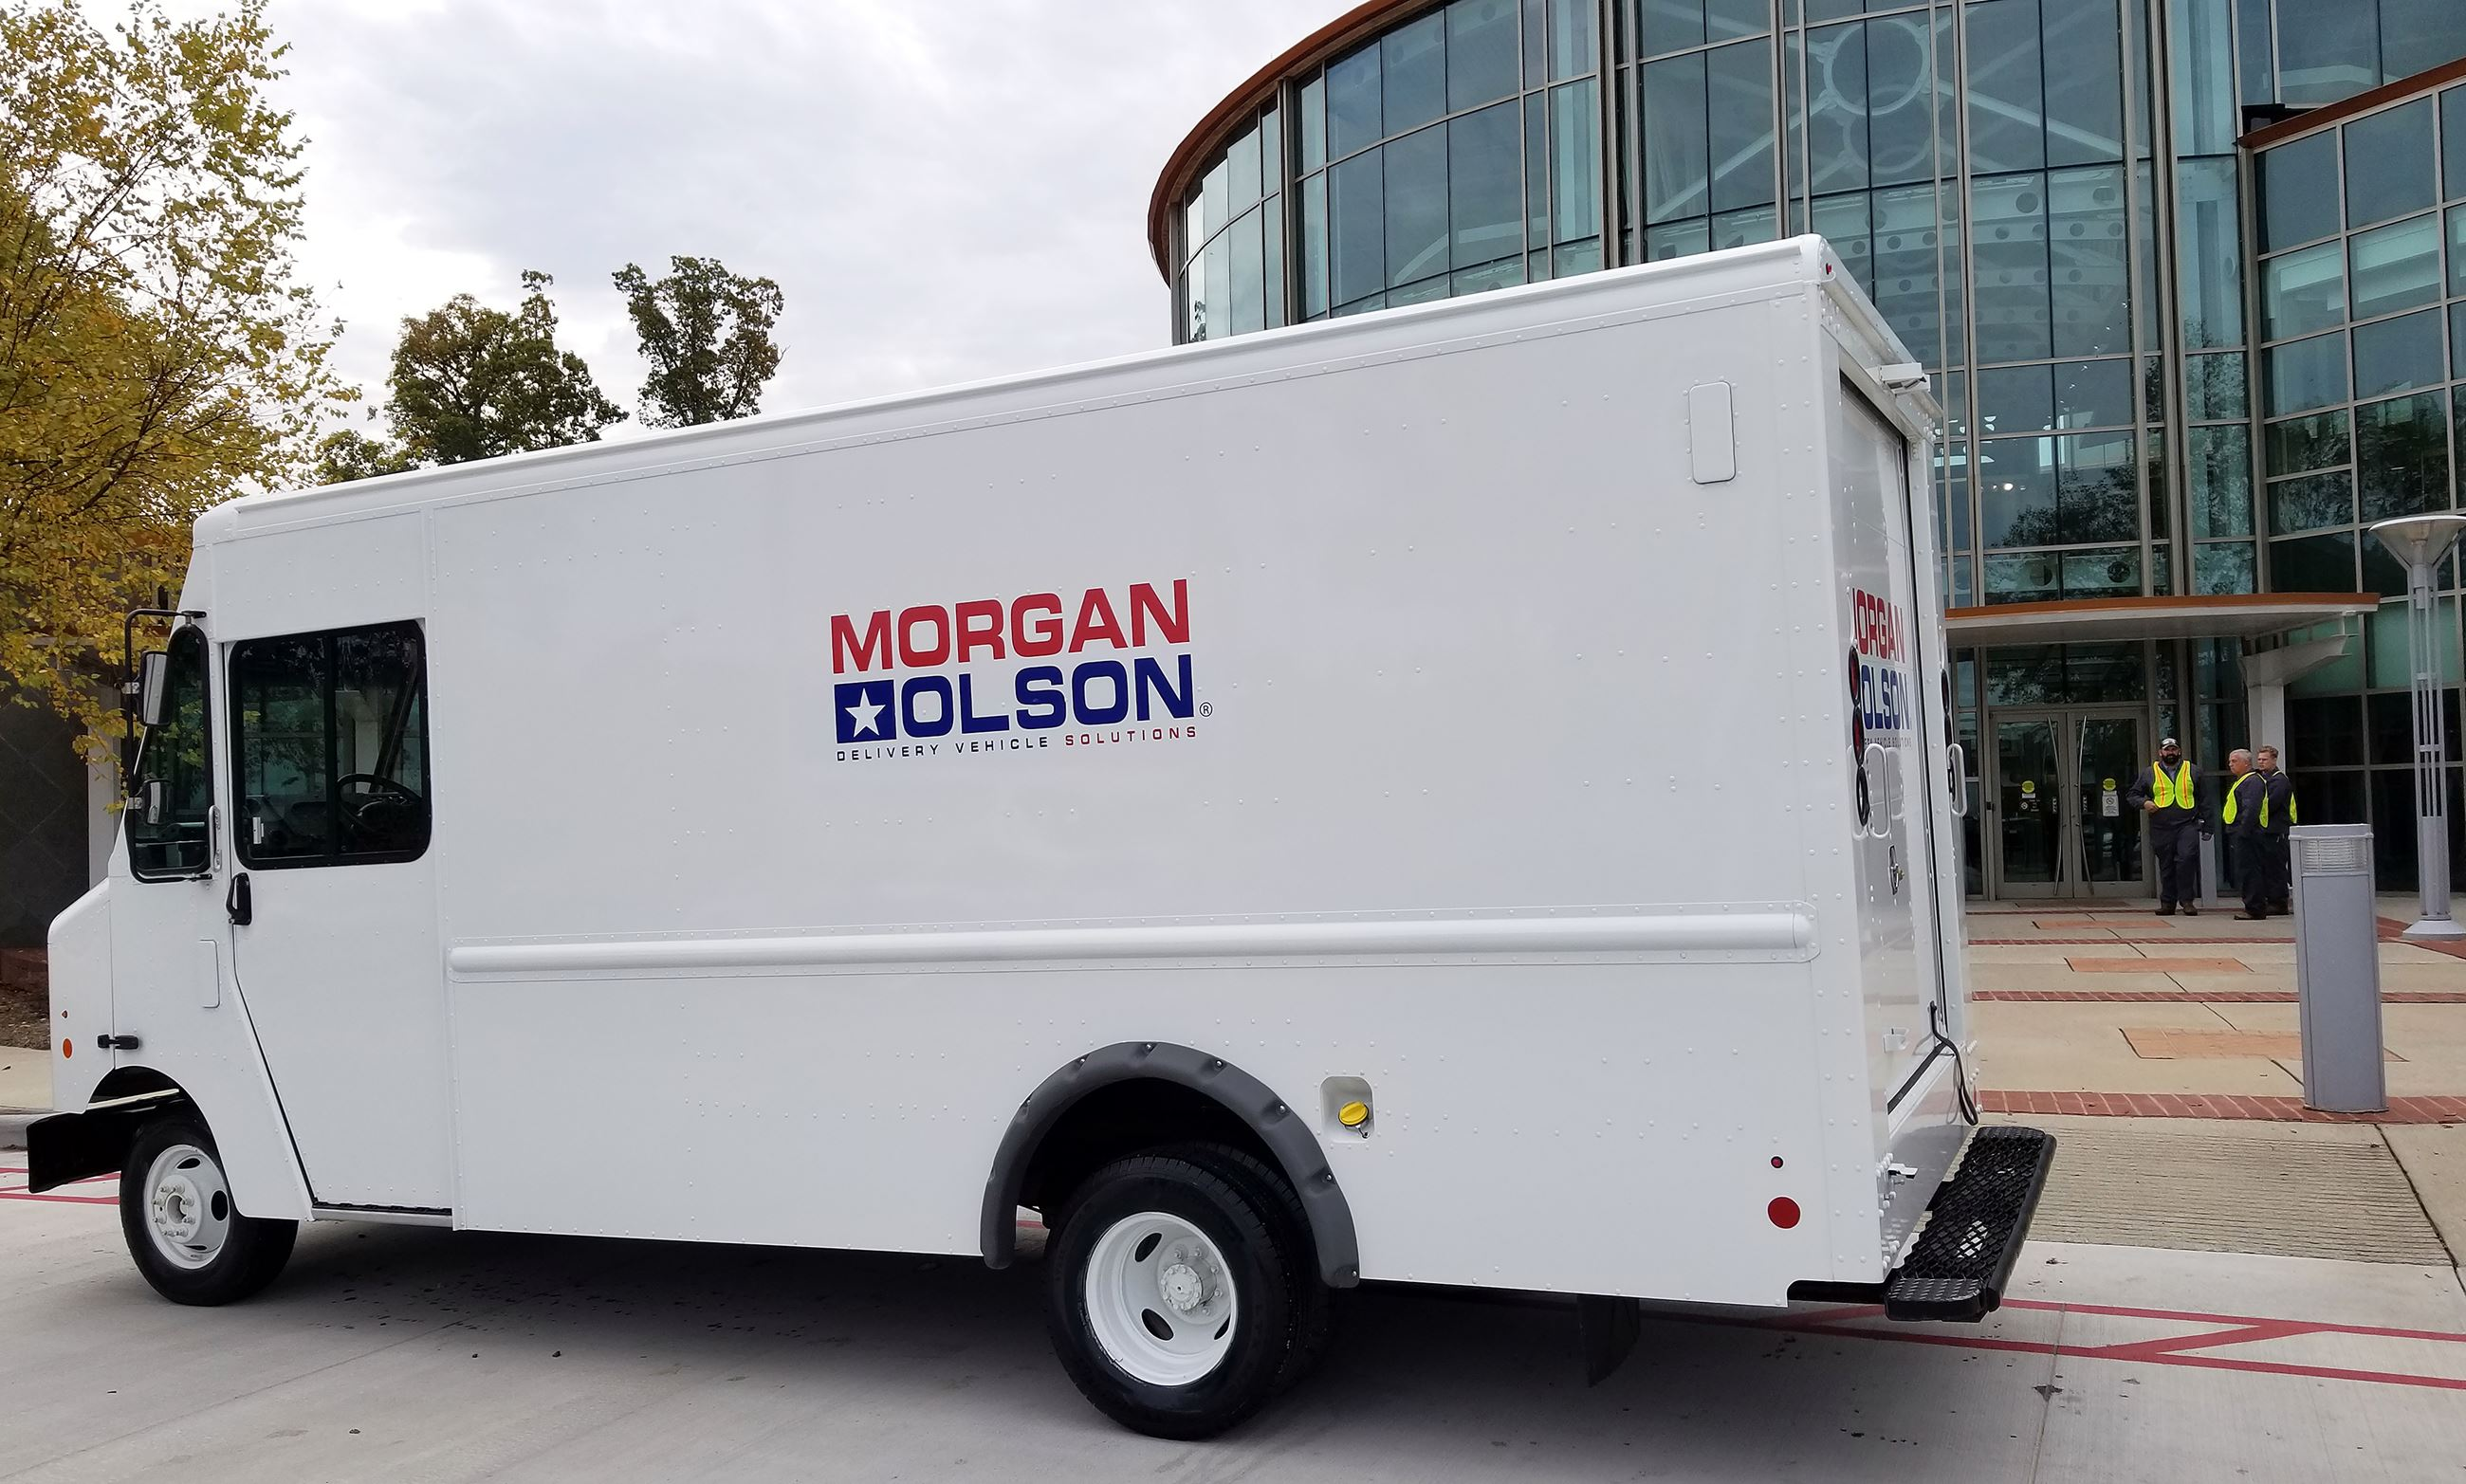 Morgan Olson delivery van parked in front of the Institute for Advanced Learning and Research